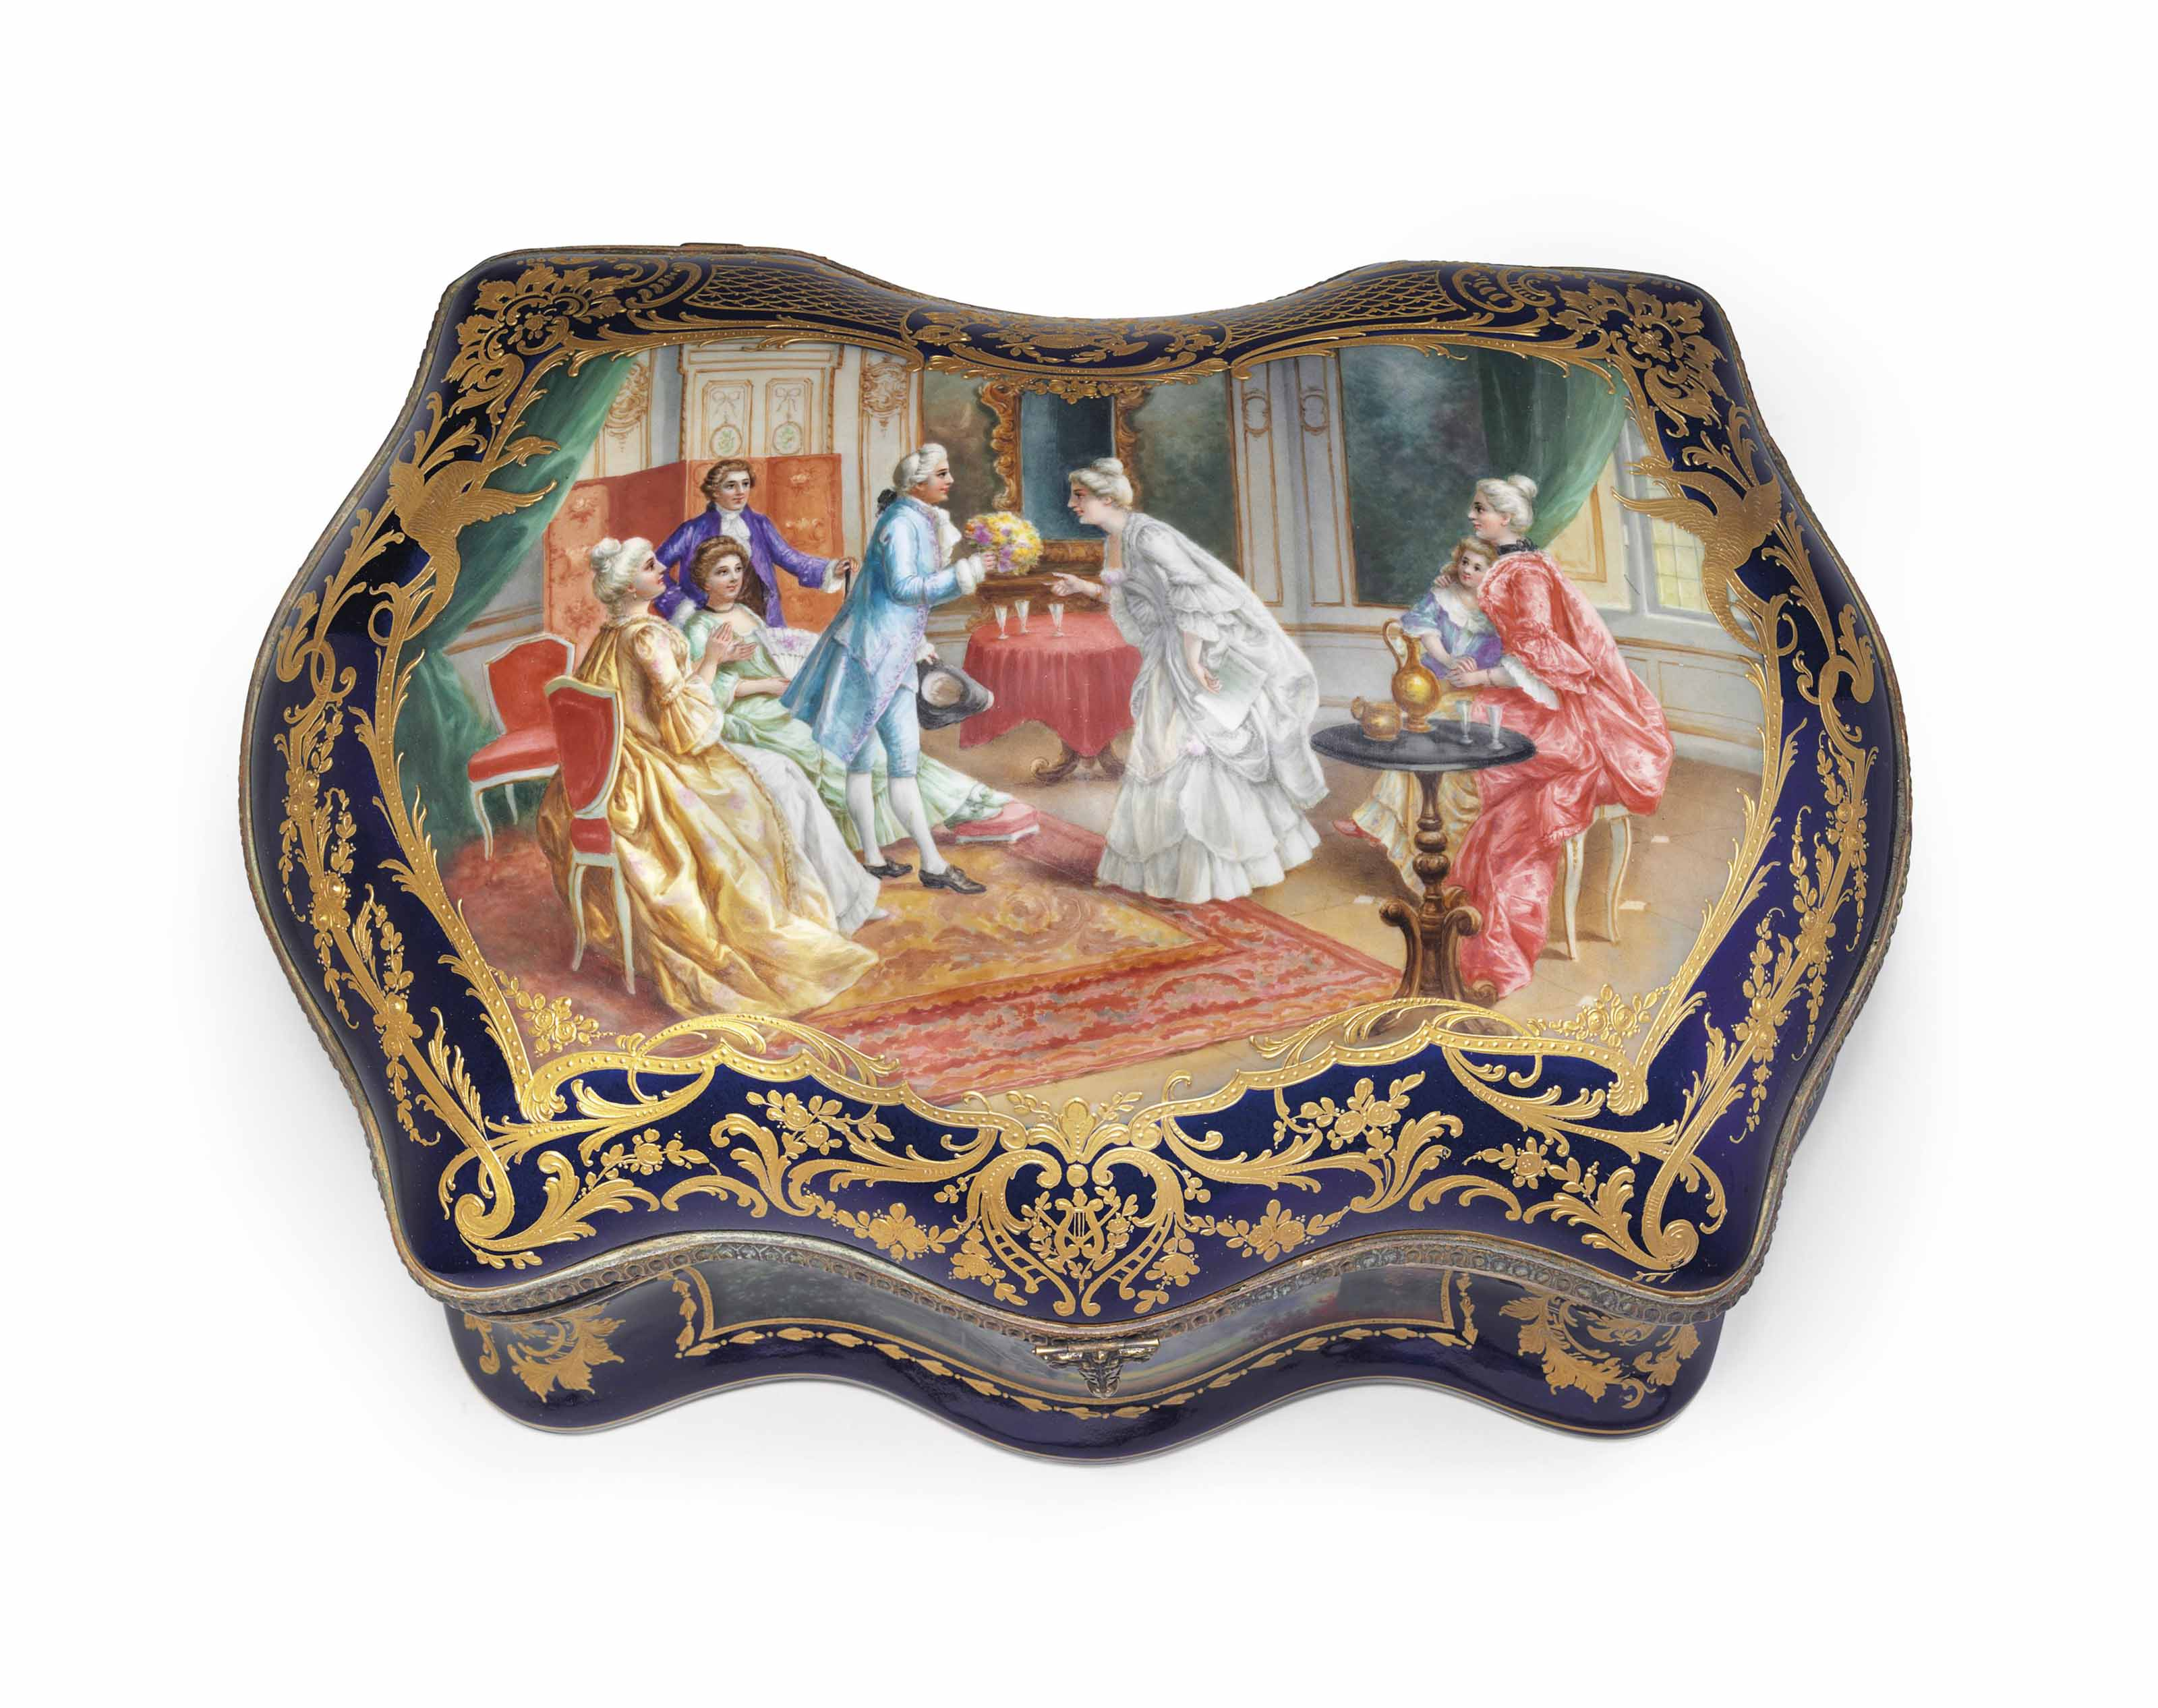 A LARGE GILT-METAL MOUNTED SEVRES STYLE PORCELAIN COBALT-BLUE GROUND JEWEL BOX AND COVER